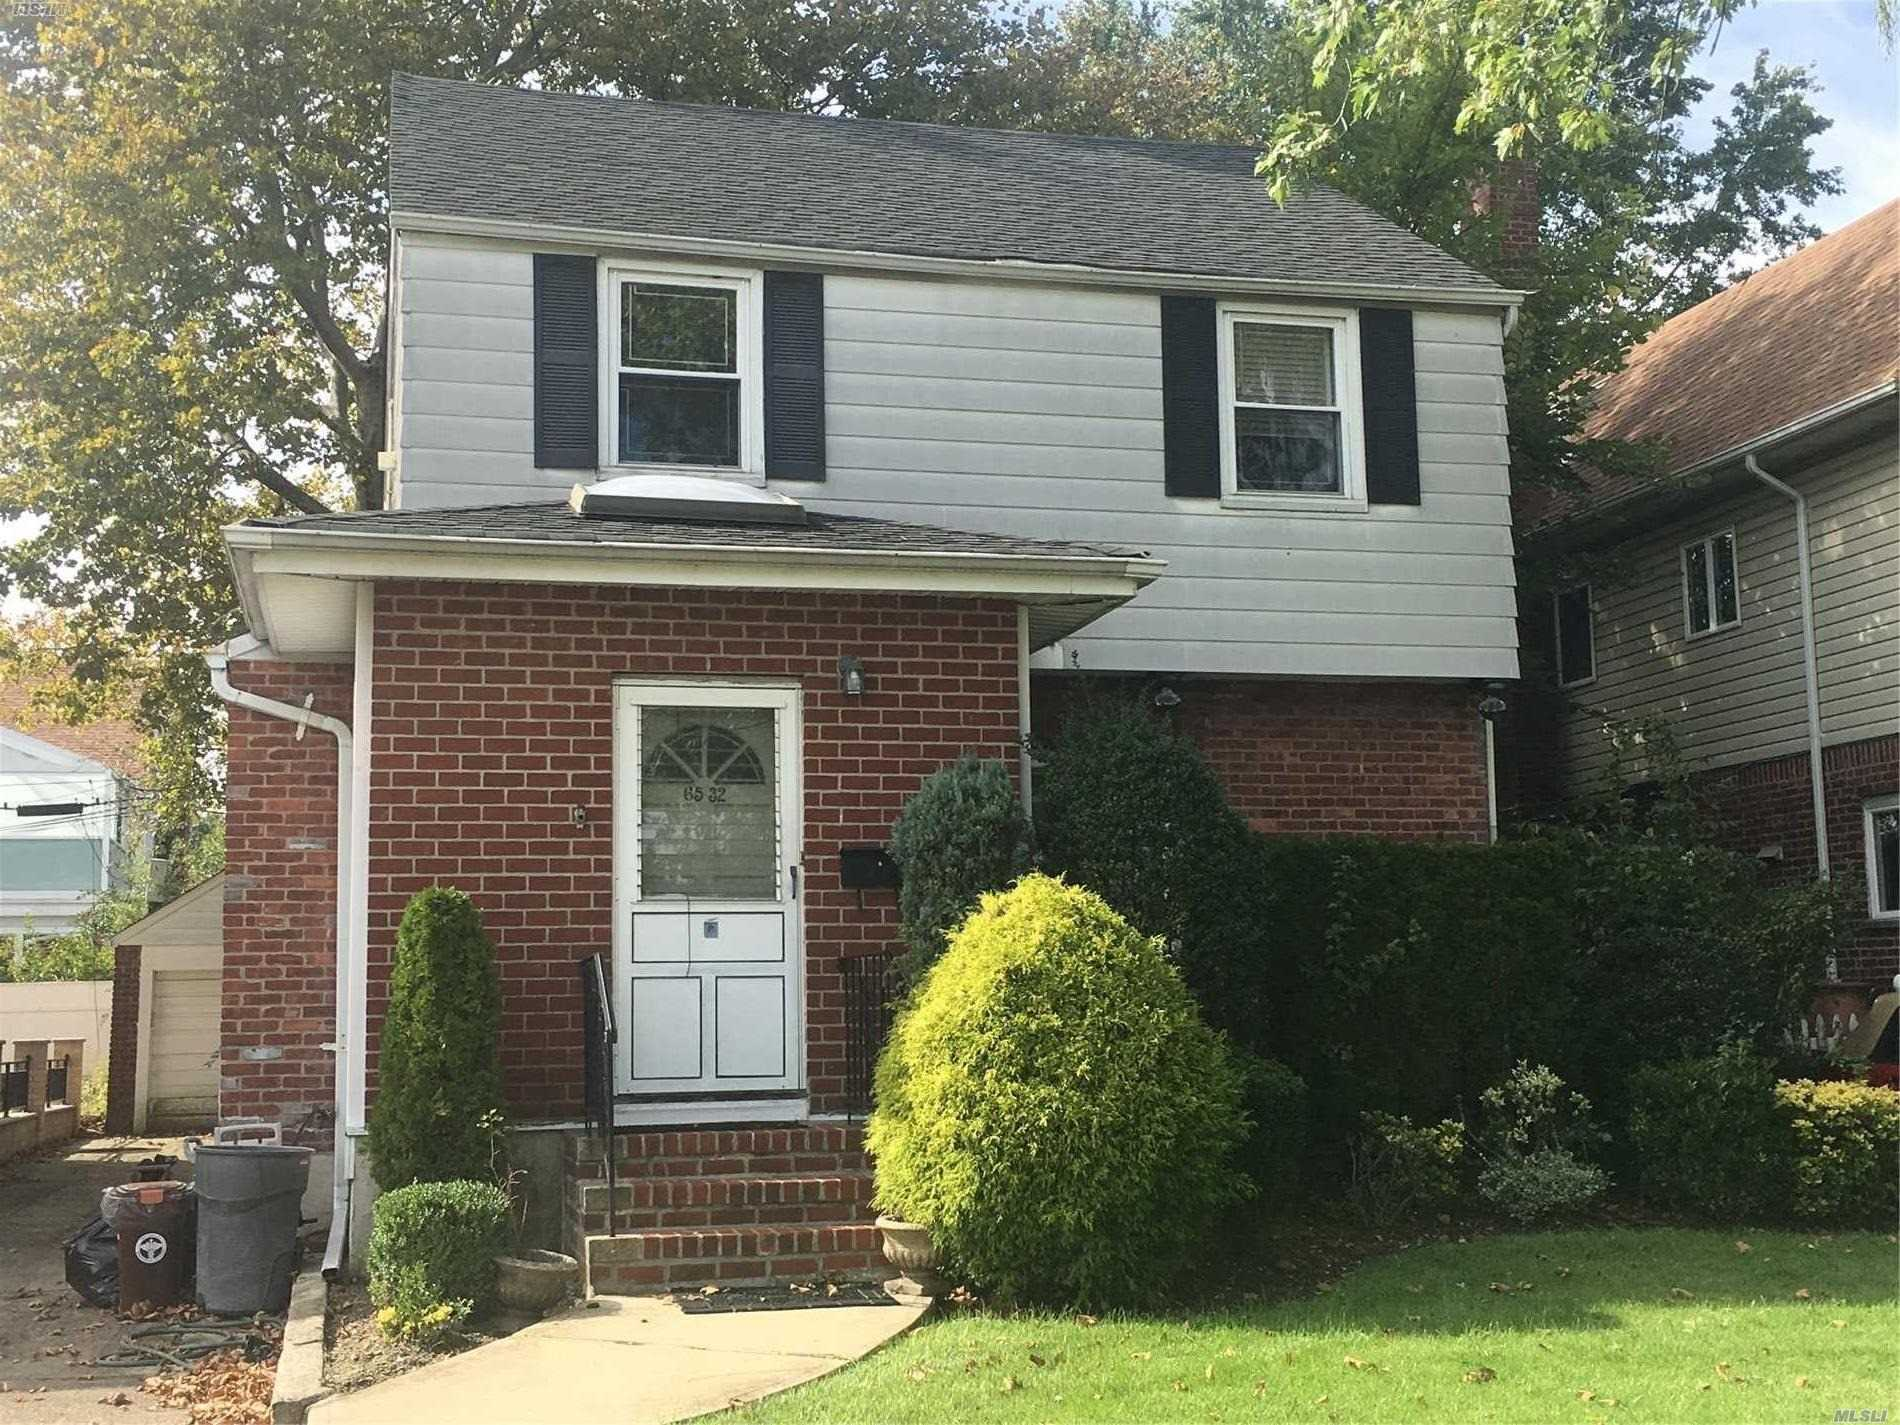 Lovely Detached Colonial In Heart Of Fresh Meadows Features Living Room, Formal Dining Room,  Kitchen, Finished Basement, Patio, Backyard & Garage. School District #26 Near Transportation & Shops.